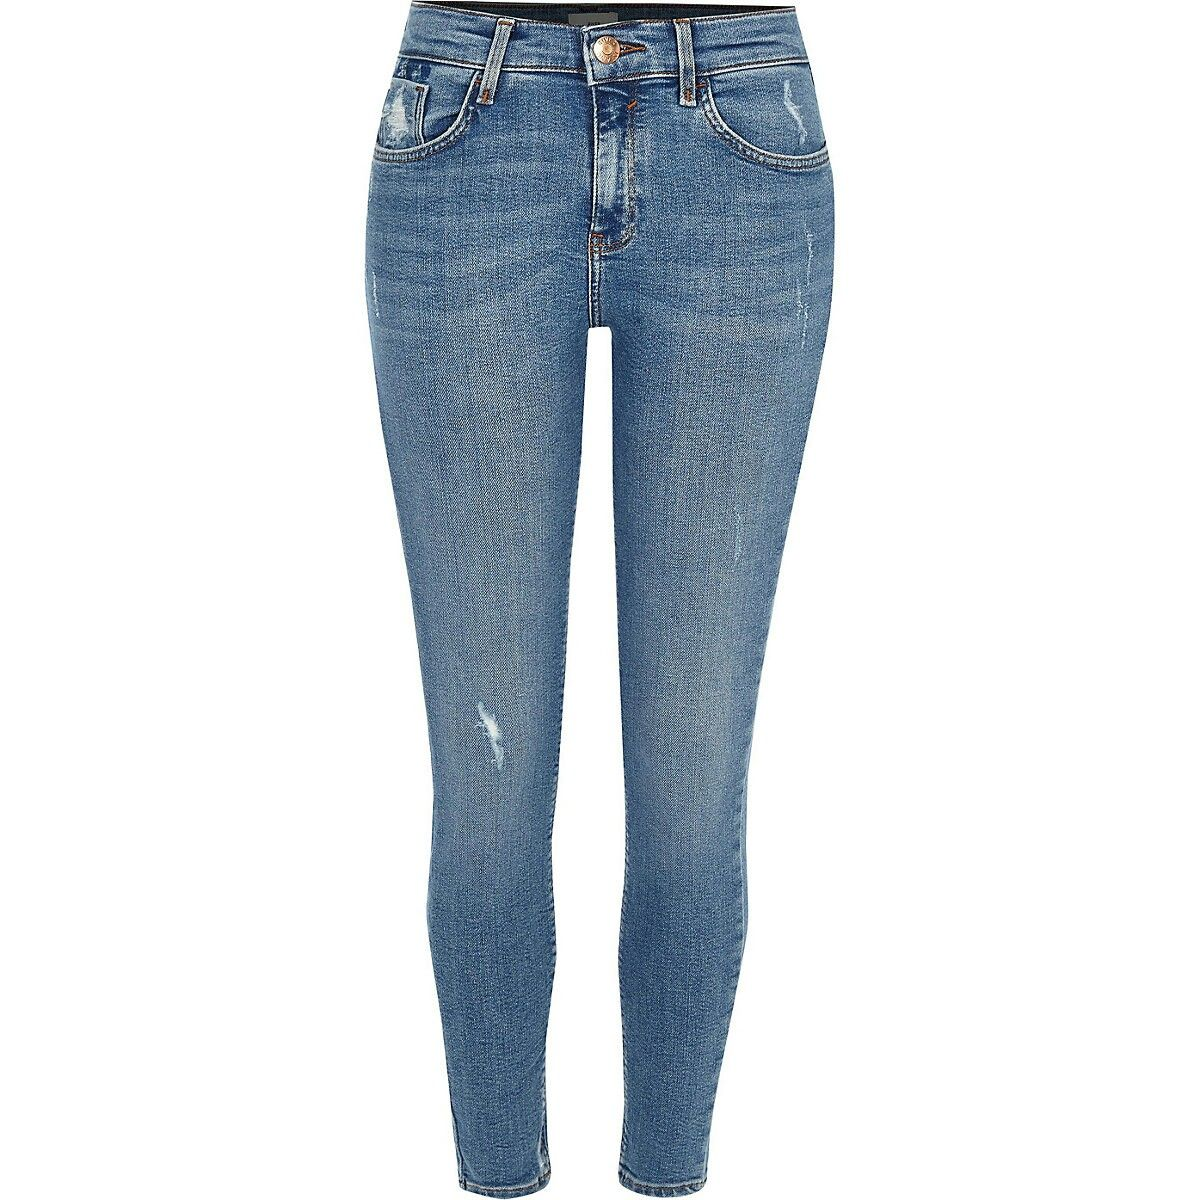 3e7747181a58e7 Mid blue Amelie skinny jeans | Polyvore fashion in 2019 | Jeans ...